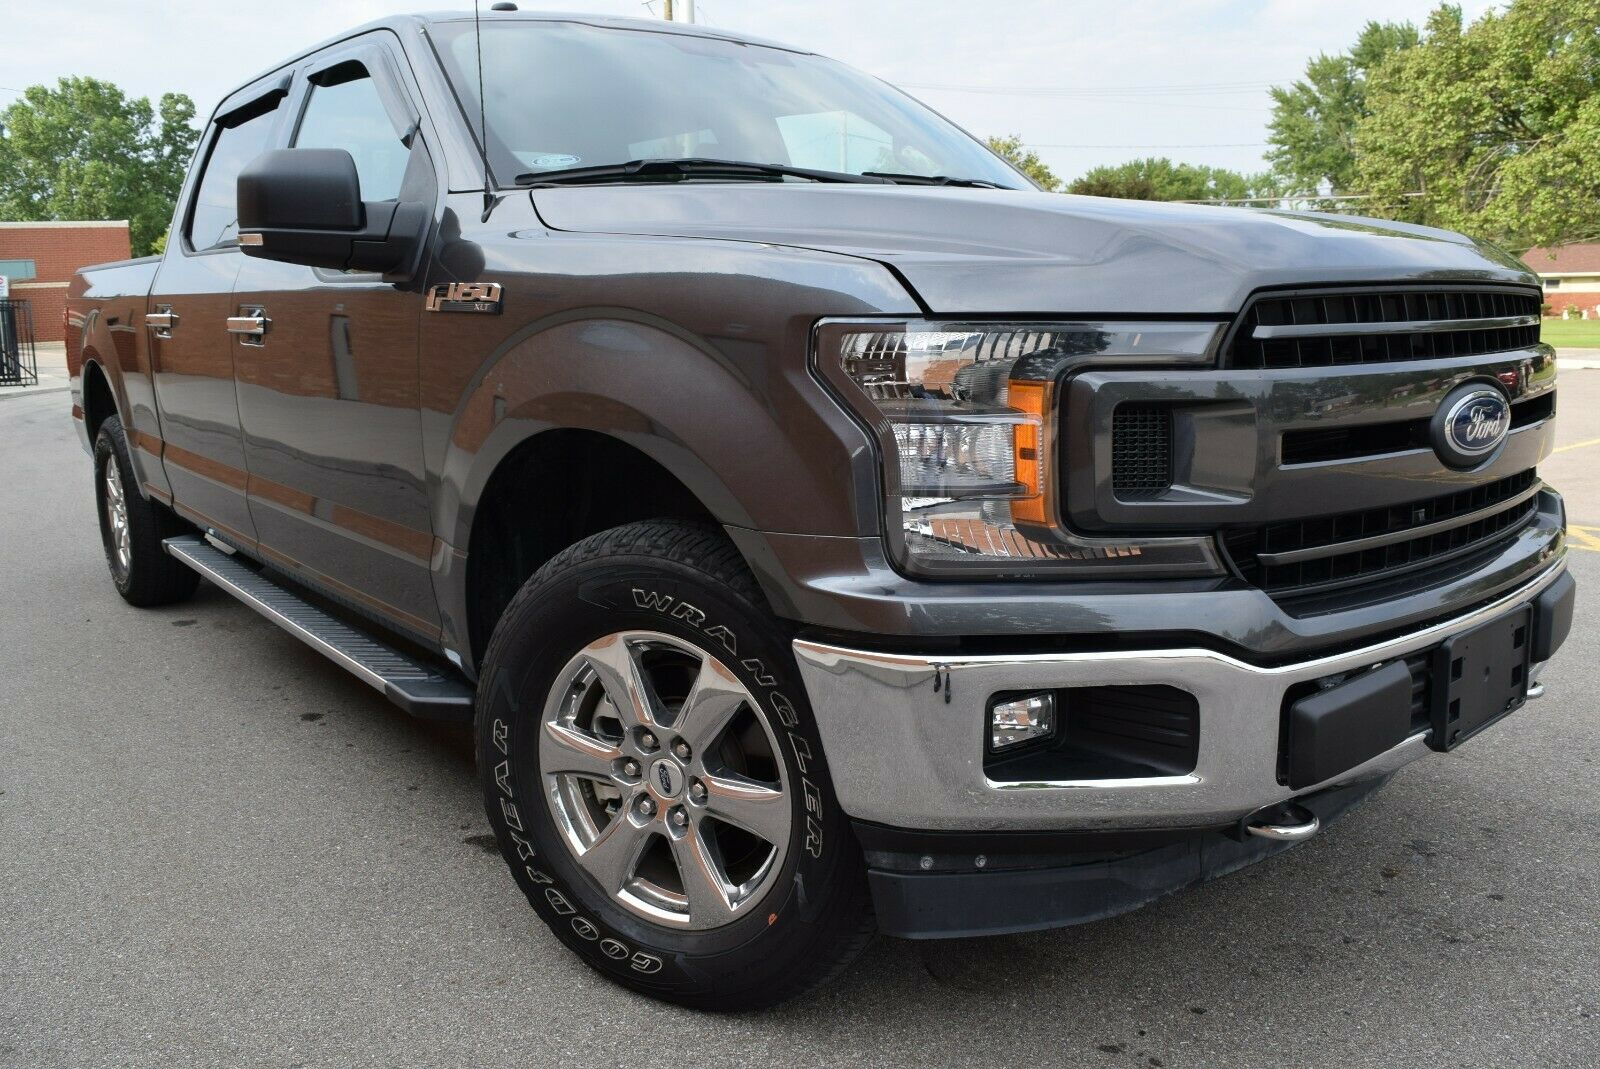 2018 Ford F-150 XLT Crew FX4 Off Road 5.0L/V8/4X4/Leather/Navigation/Tow/18'/Cam